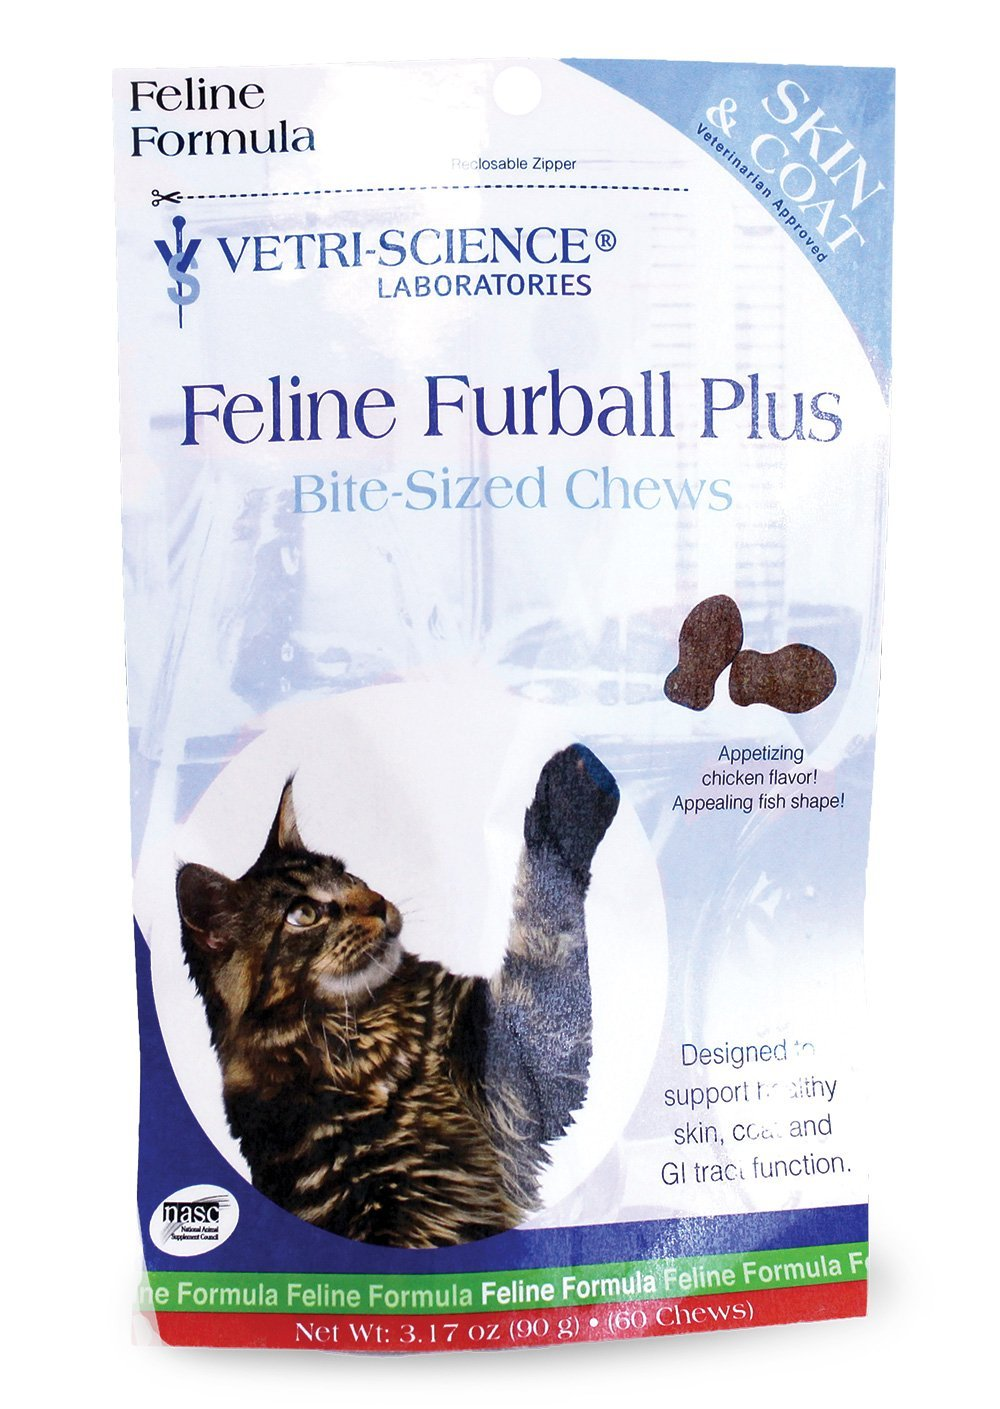 Vetri-Science Laboratories Feline Furball Plus Hairball Remedy